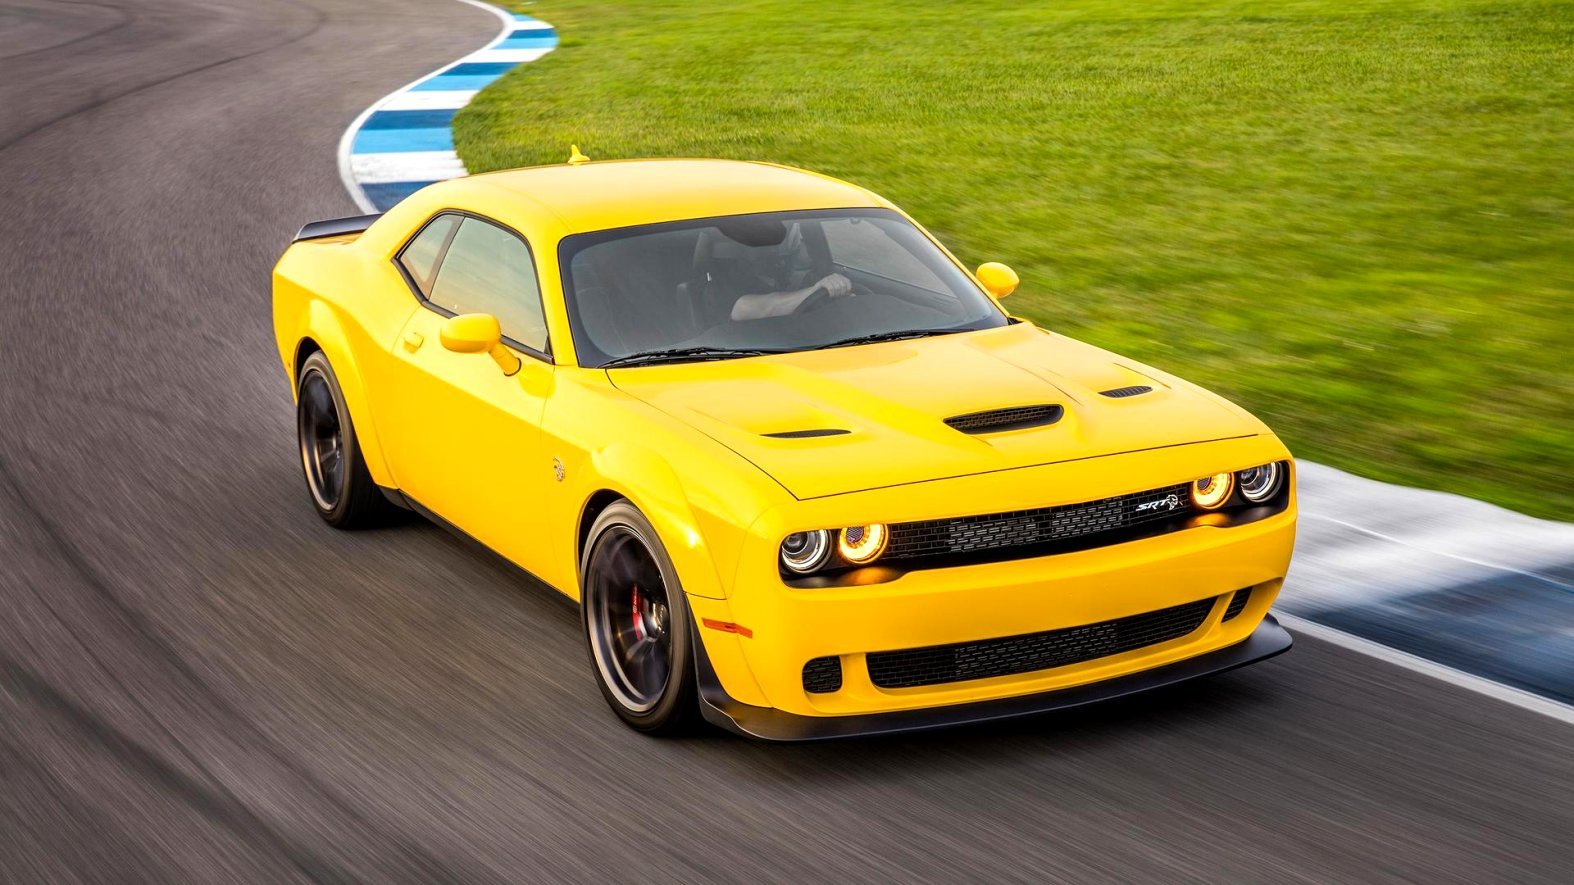 2020 dodge challenger yellow jacket Reviews